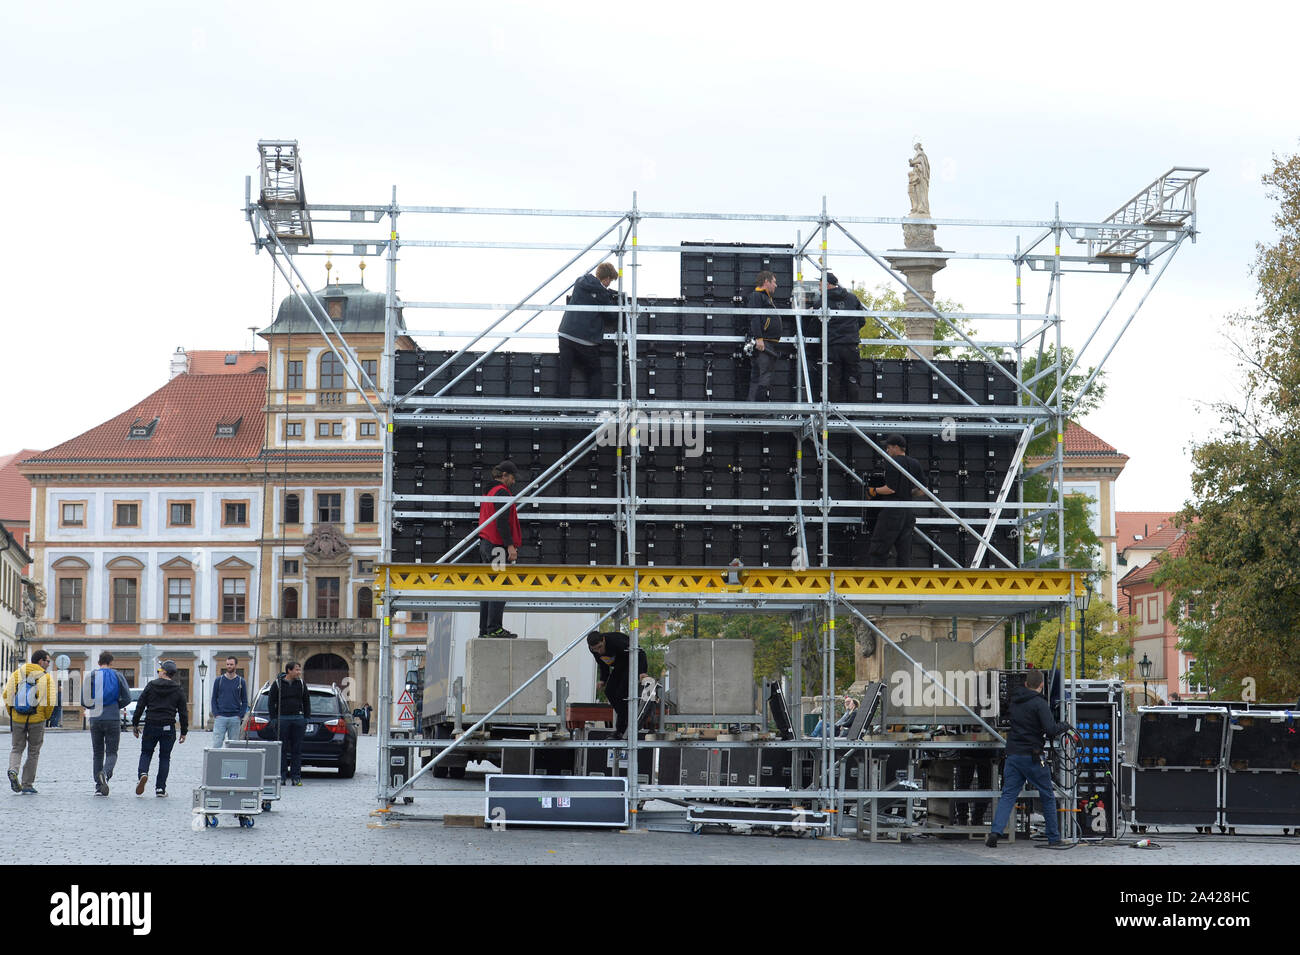 The instalation of the large-scale screen on Hradcany square outside the Prague Castle, Prague, Czech Republic, October 11, 2019. On Saturday, October 12, a mourning ceremony will take place in St Vitus Cathedral at the Prague Castle, the seat of Czech kings and presidents, at 11:00. The heritage site will be partially closed to the public until 14:00 over the event that will be for invited guests only. The public can watch it on large-scale screens. Czech pop singer Karel Gott died at 80 on October 1, 2019, before midnight at home in his family circle. Gott was at the top of music for some 60 Stock Photo